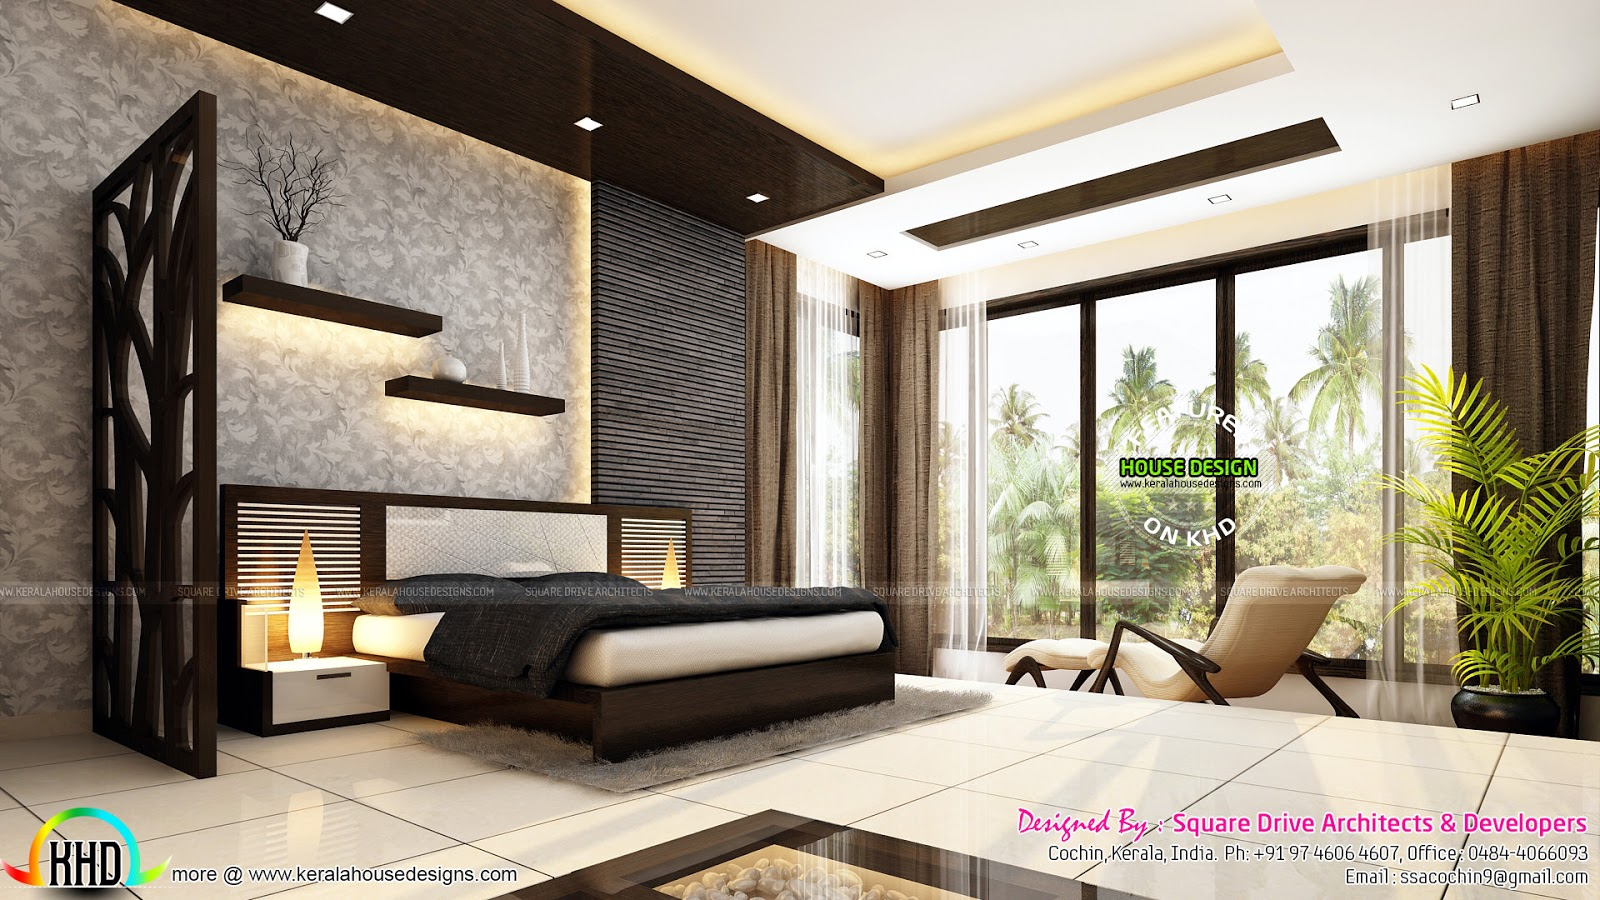 Very beautiful modern interior designs kerala home for Interior design images bedroom